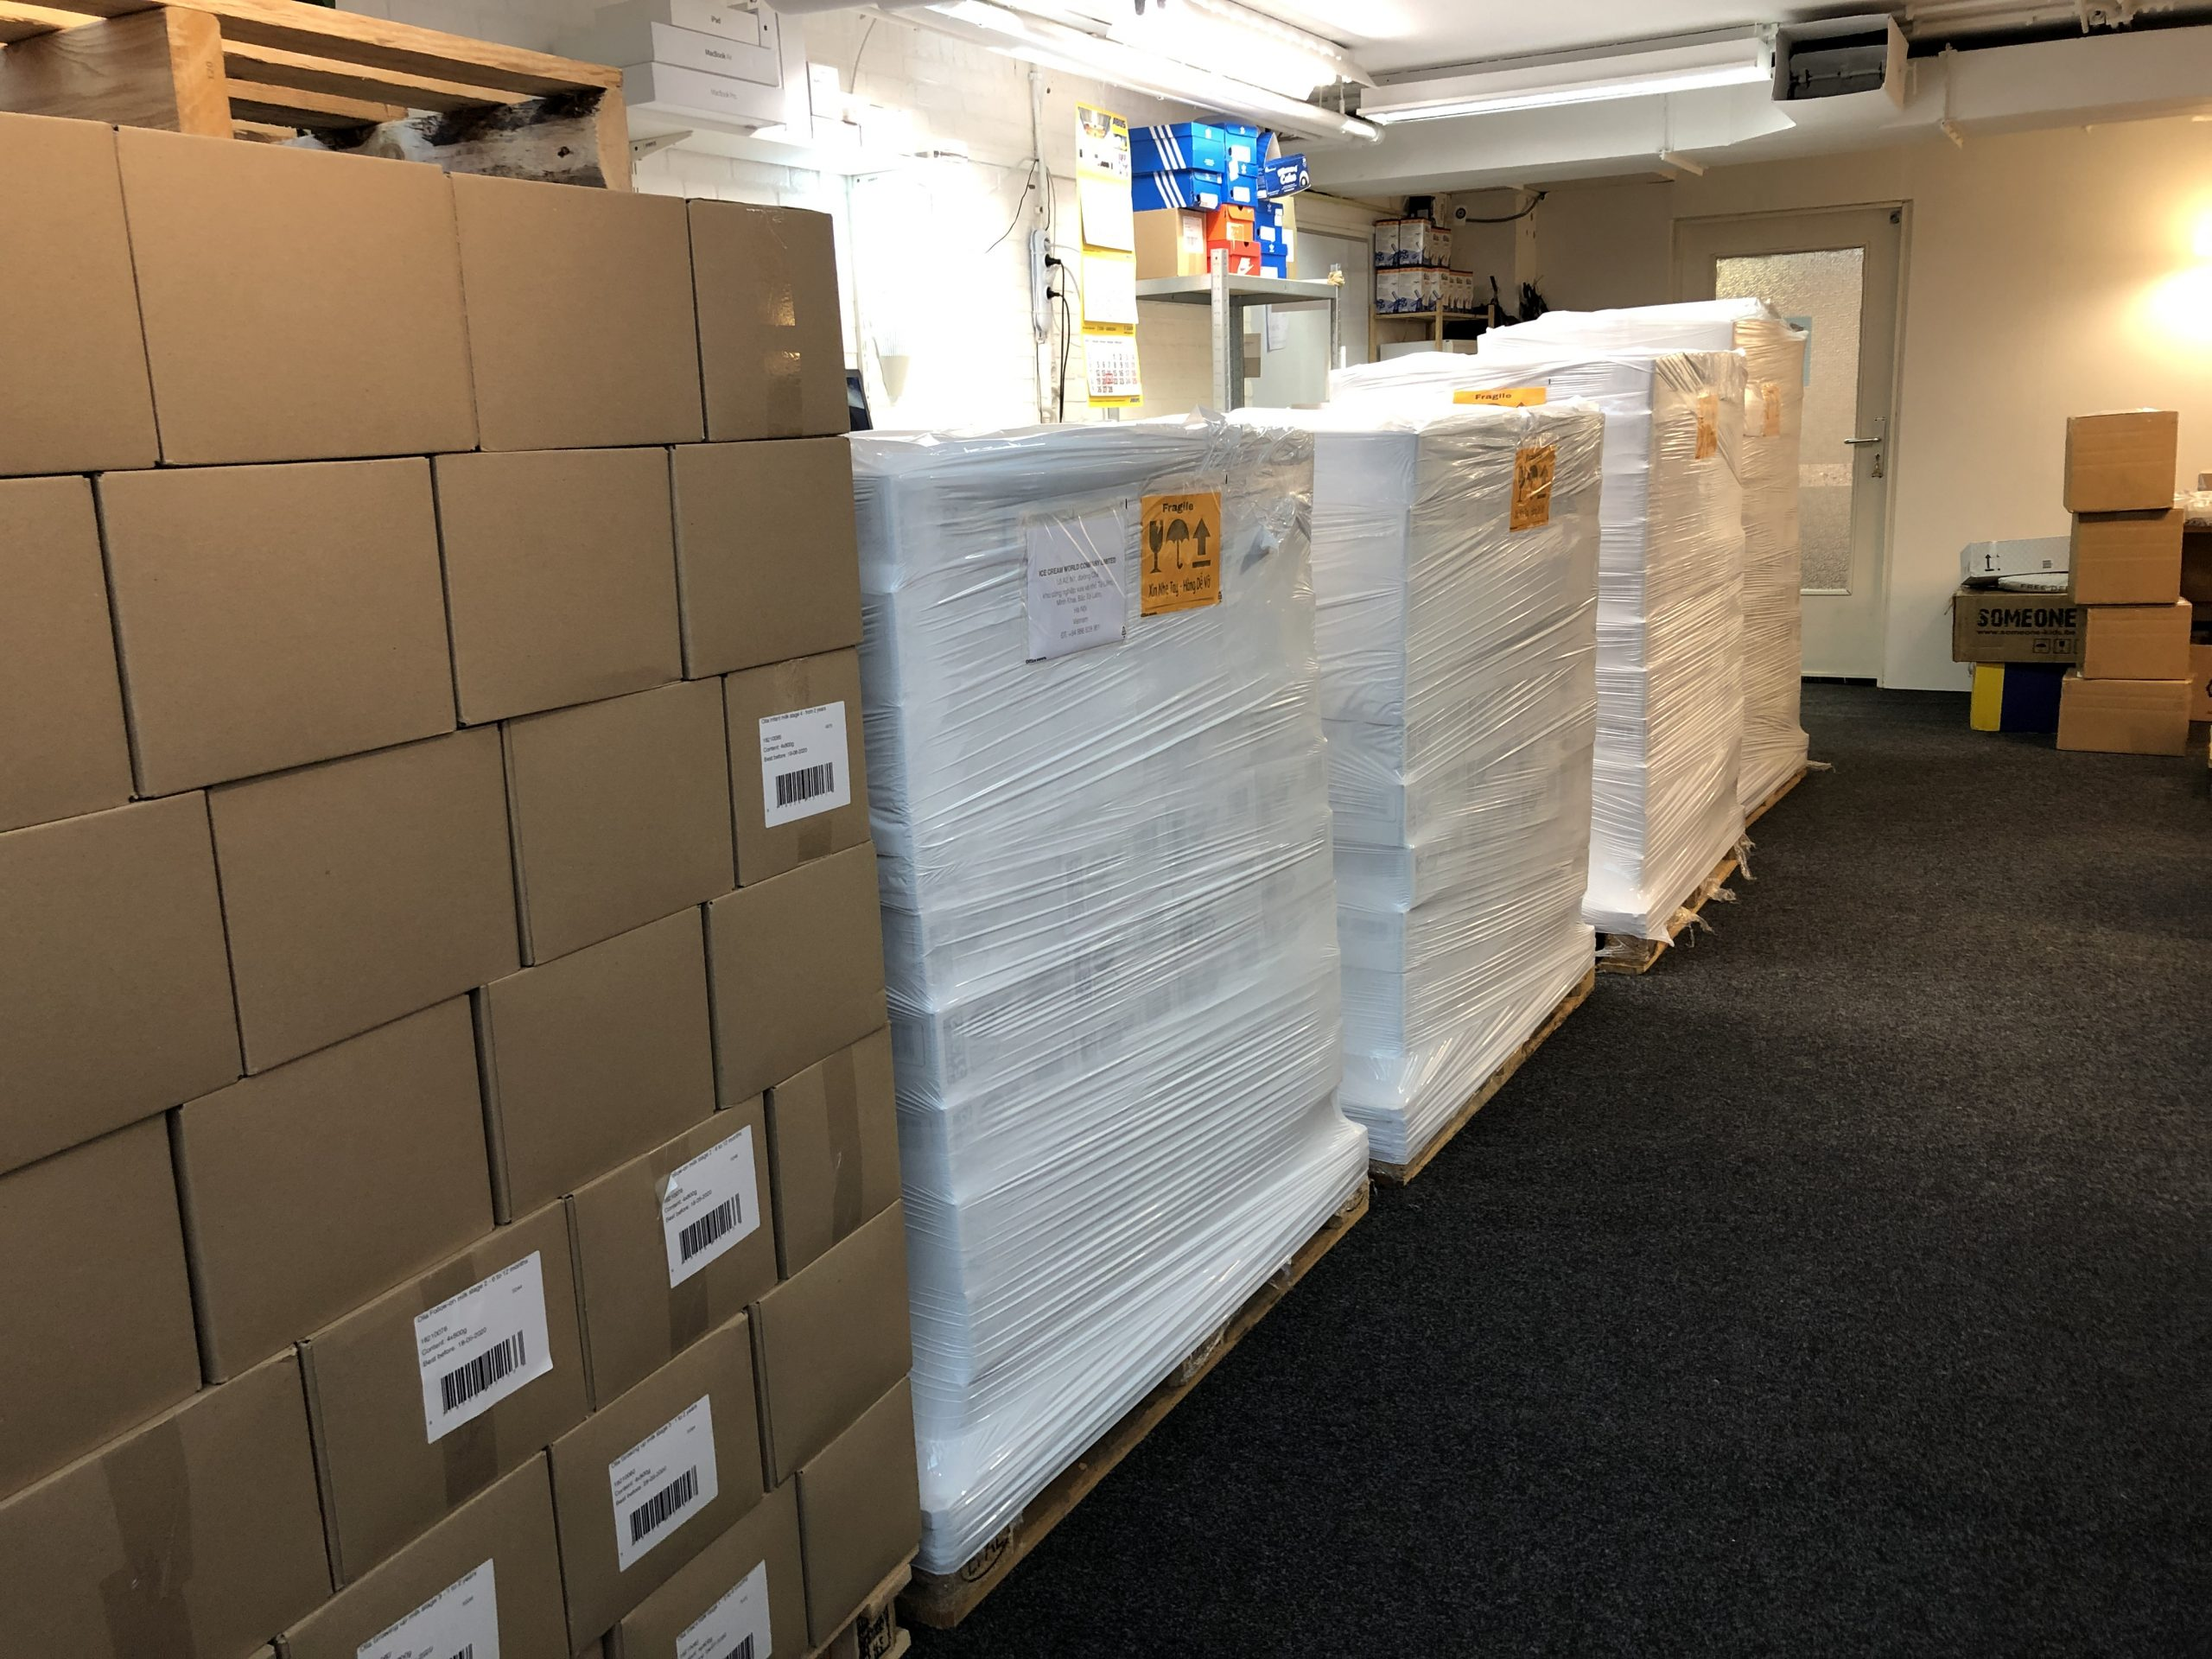 Shipping from the Netherlands to Vietnam in less than 10days